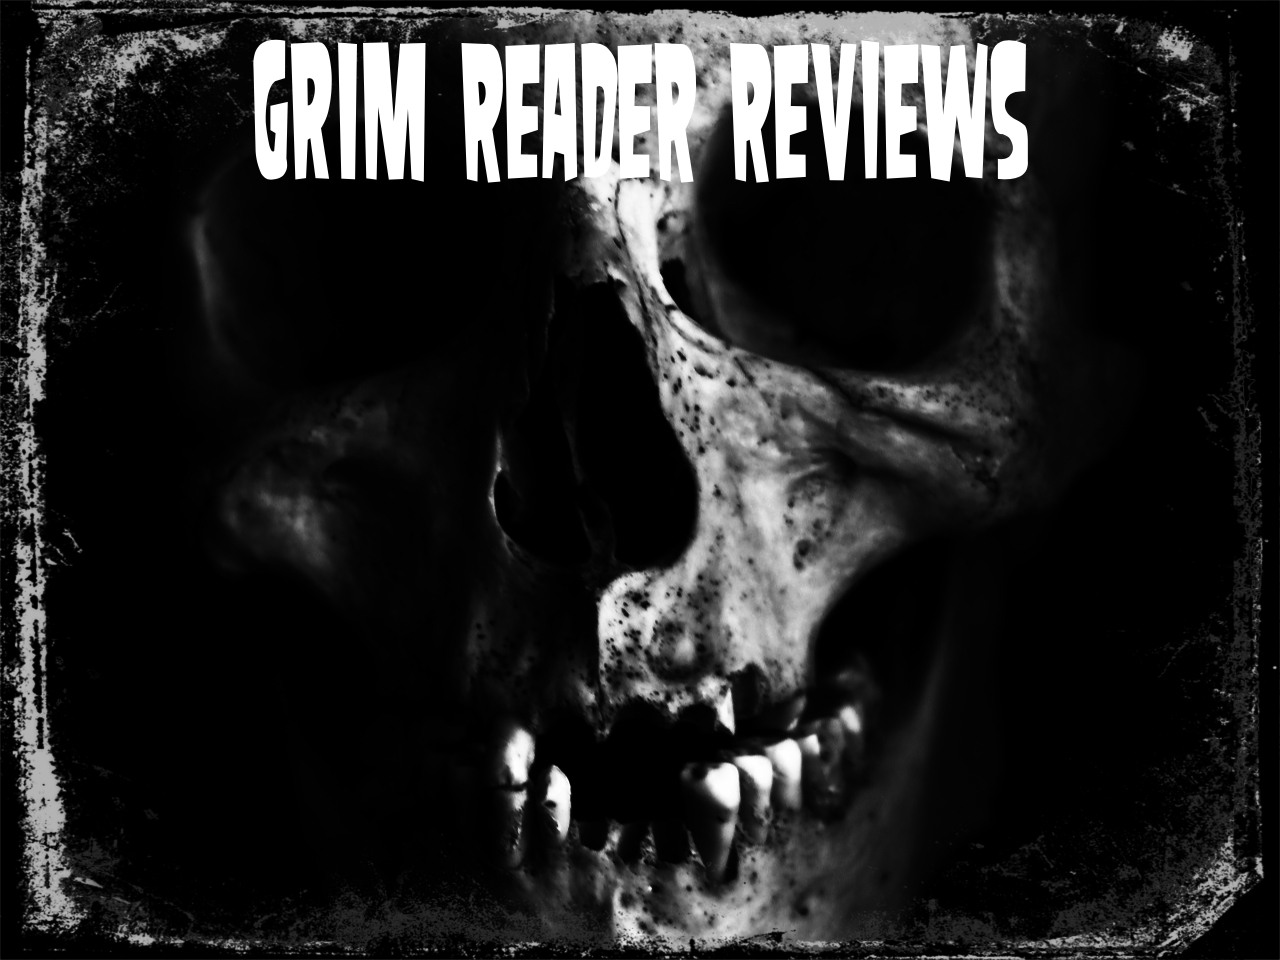 Grim Reader Reviews